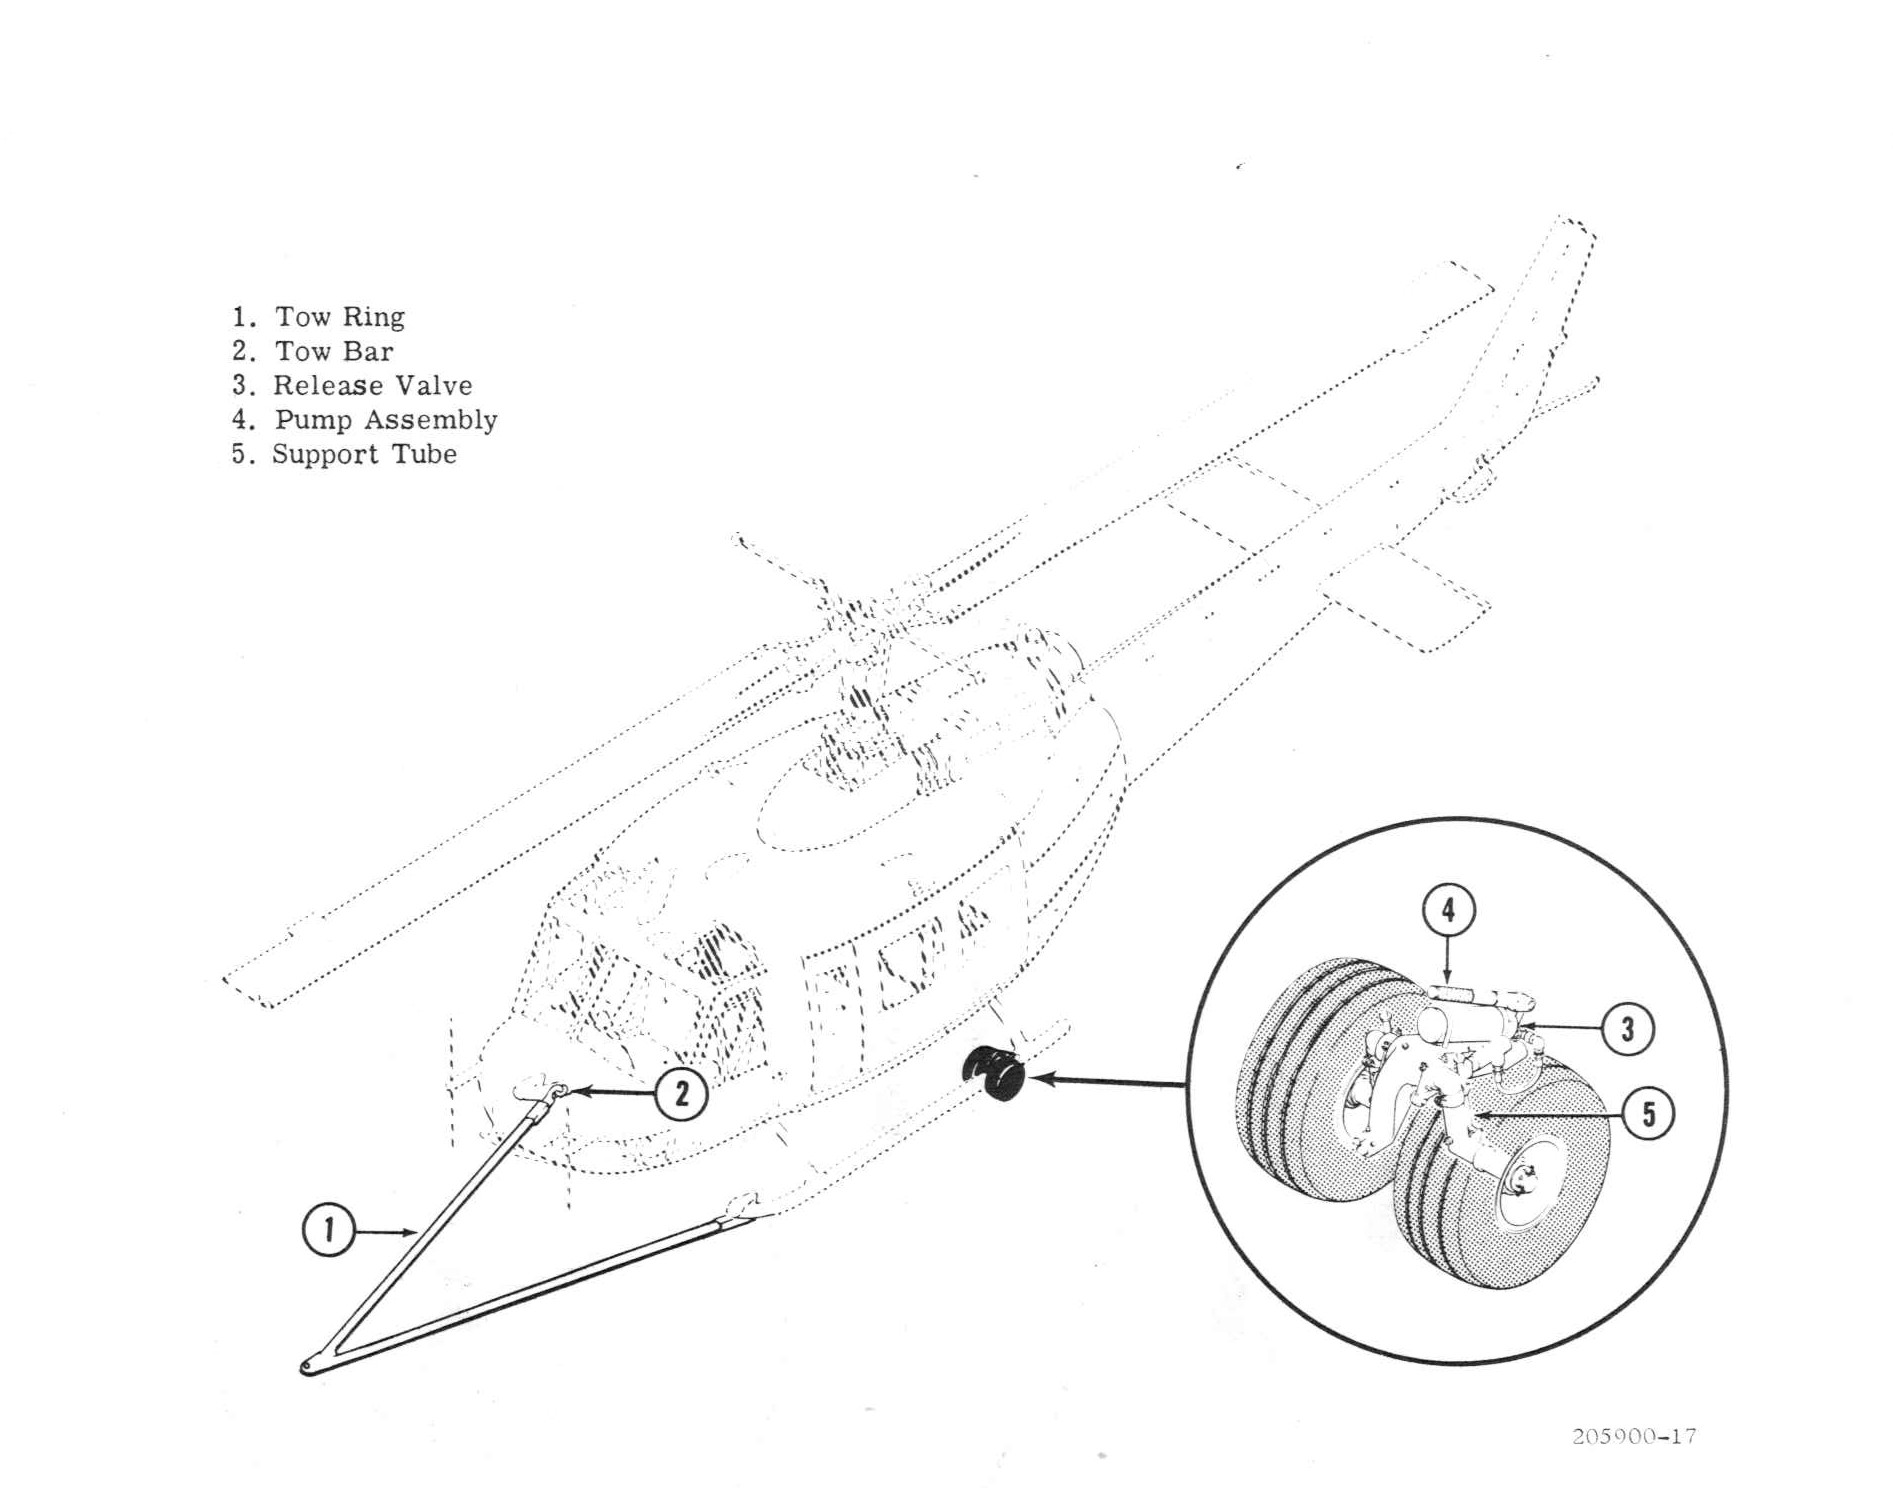 Bell Model 205A-1 Image Downloads